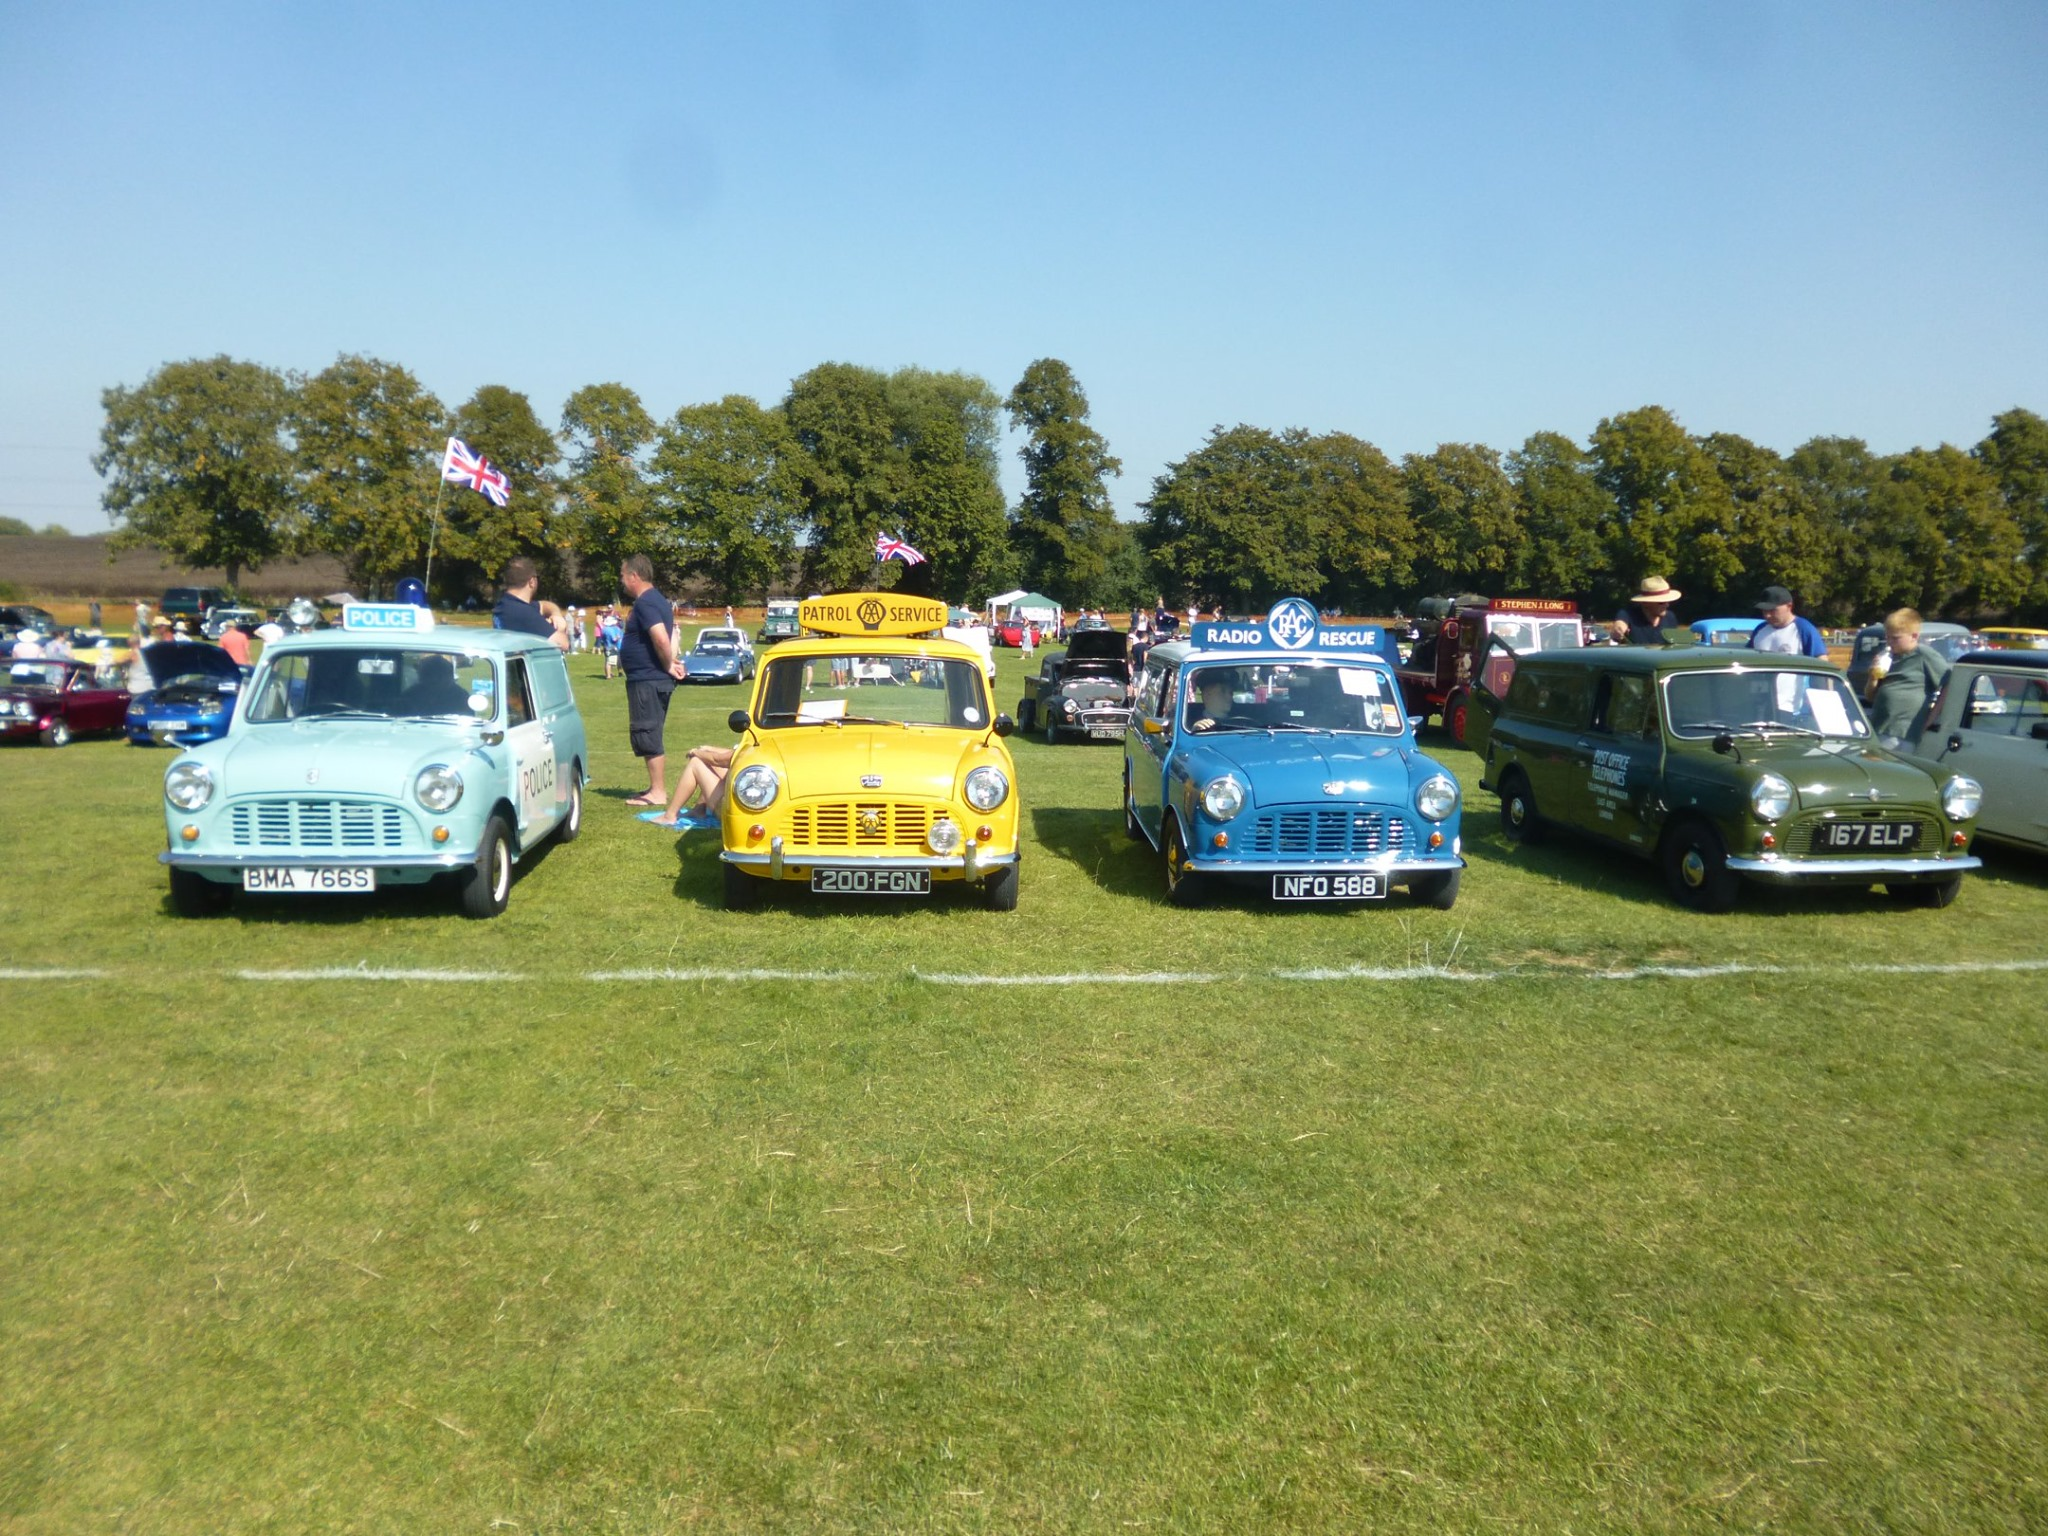 Varying minis lined up on the grass of the park with examples such as the police mini and radio rescue mini